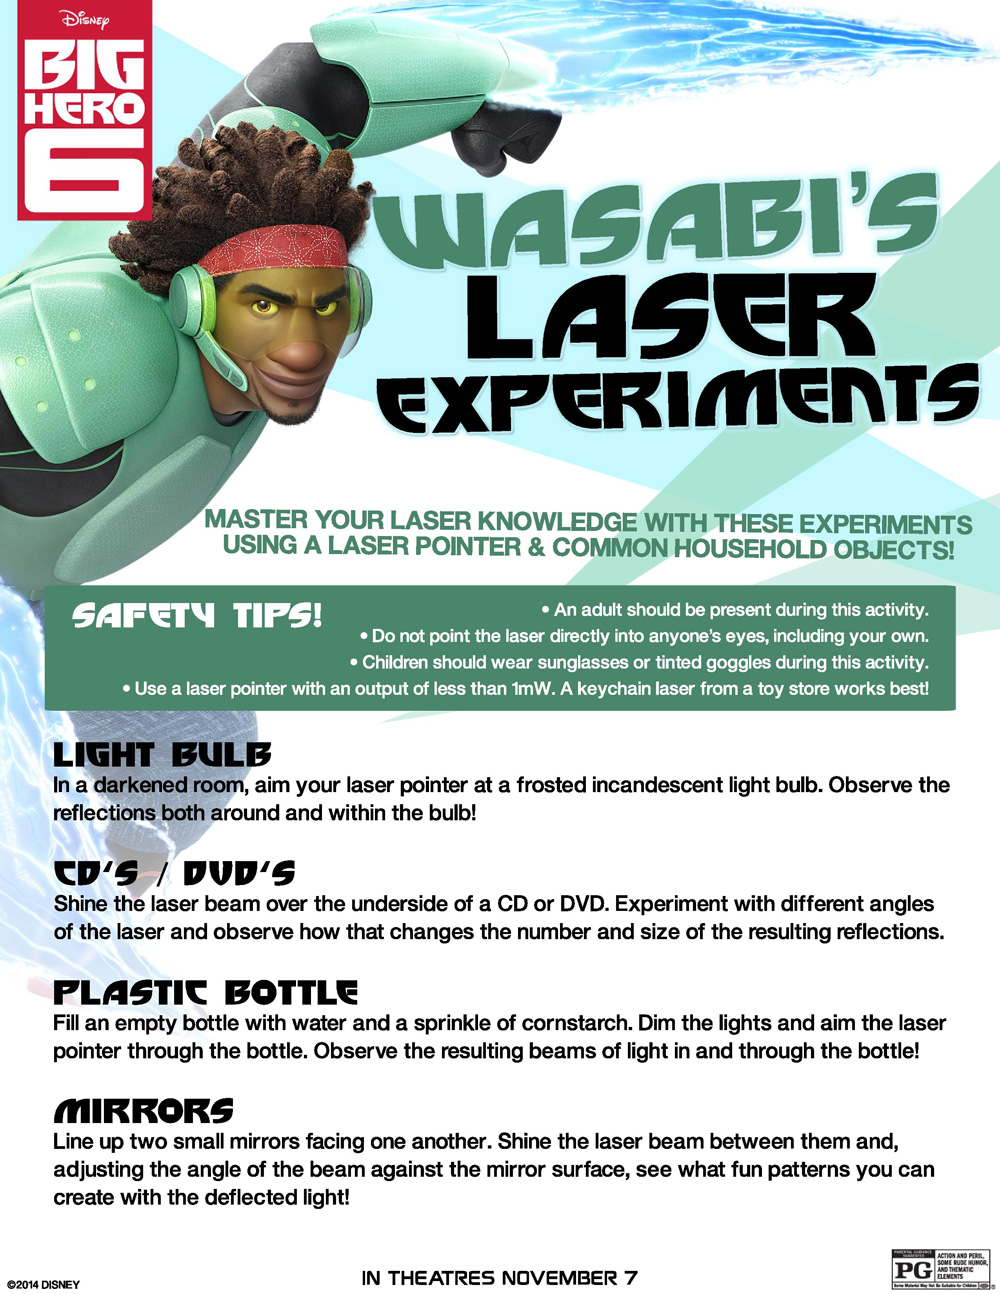 Free Big Hero 6 Activity Sheets, Science Experiments and Recipes ...